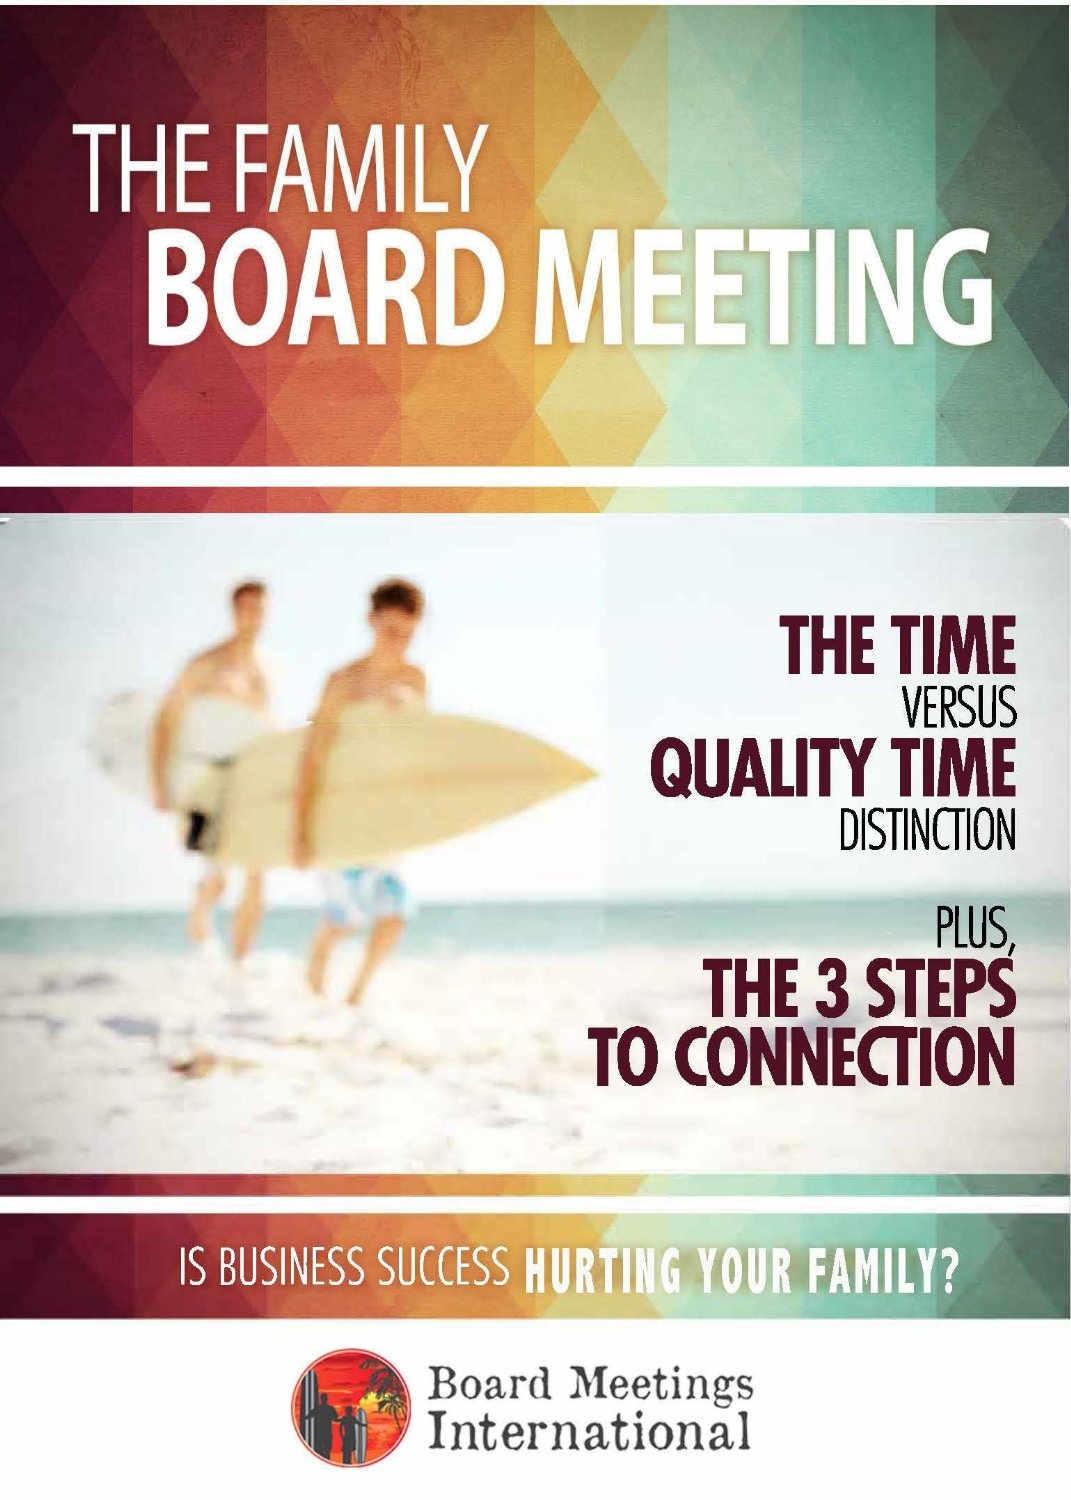 Jim Sheils - The Family Board Meeting